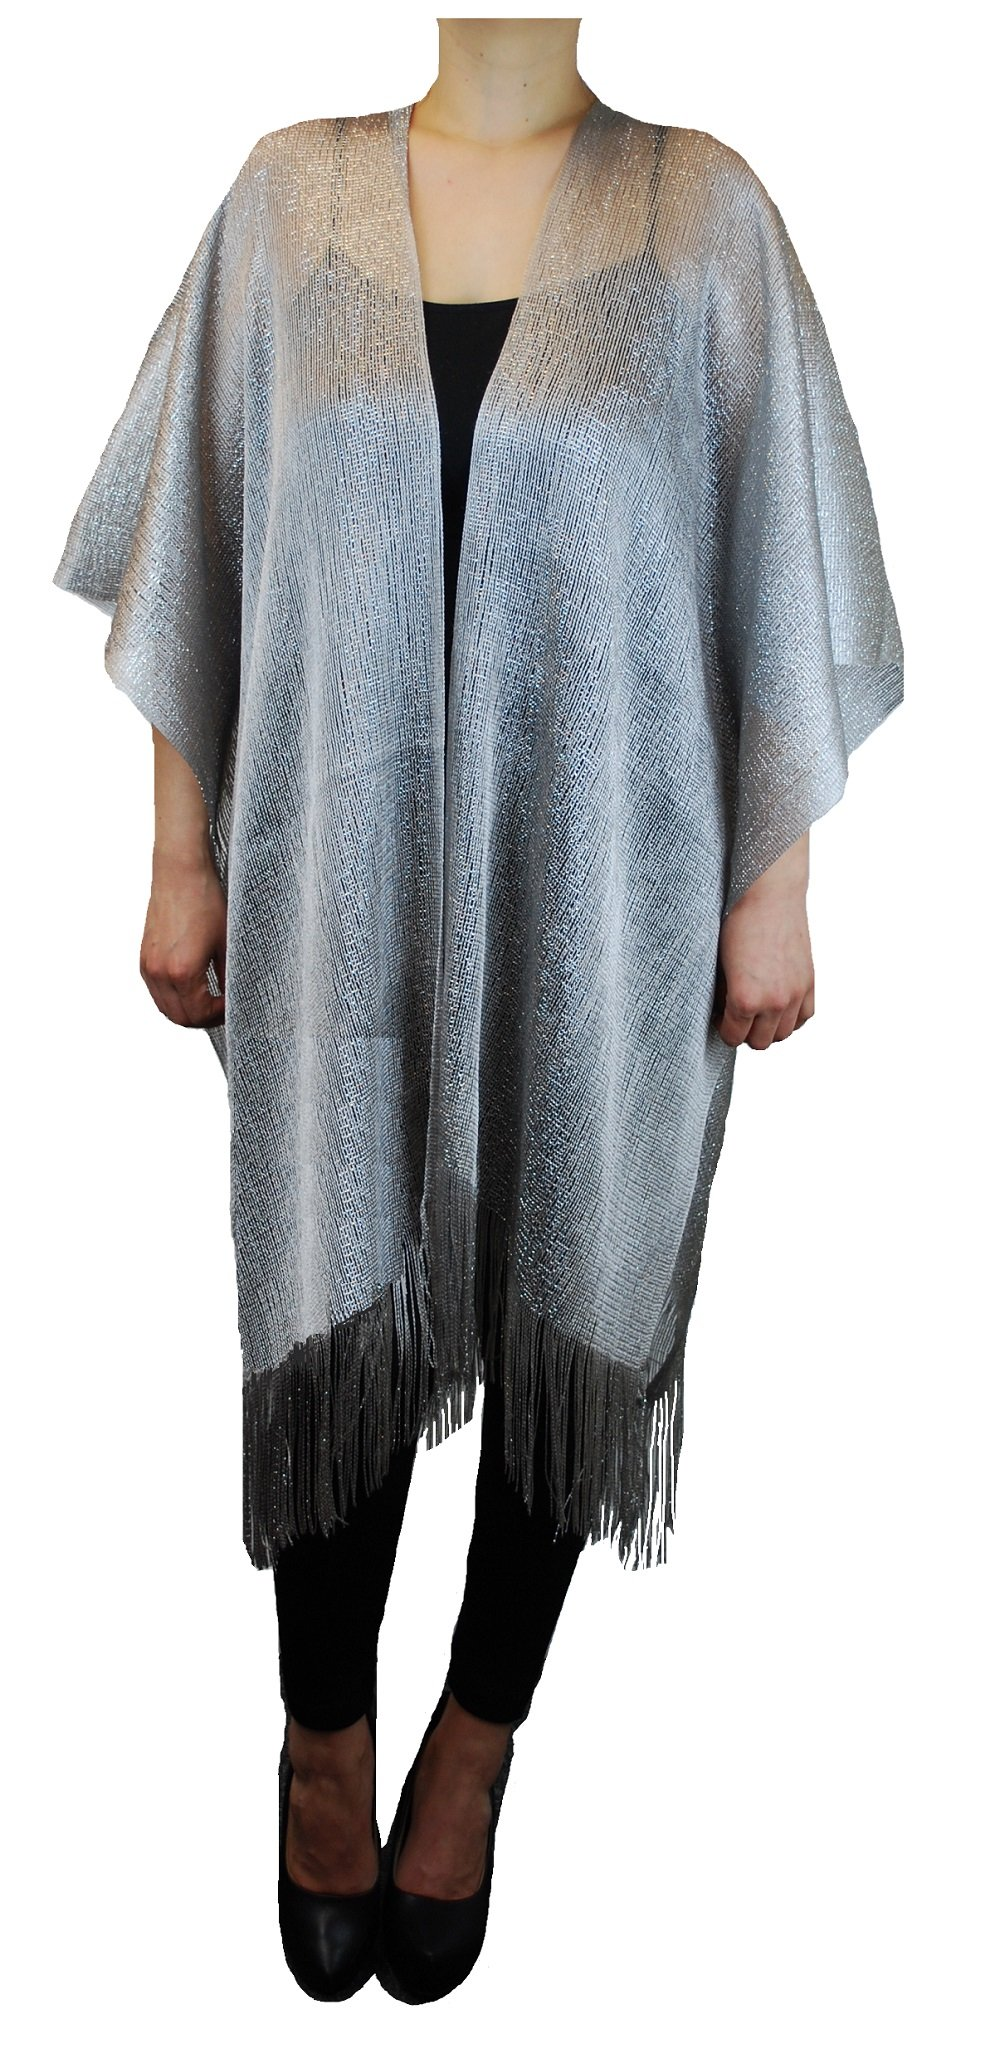 Womens Mother Of The Bride Shiny Metallic Fashion Evening Shawl Tunic Poncho Cover up Cardigan Top (Silver)